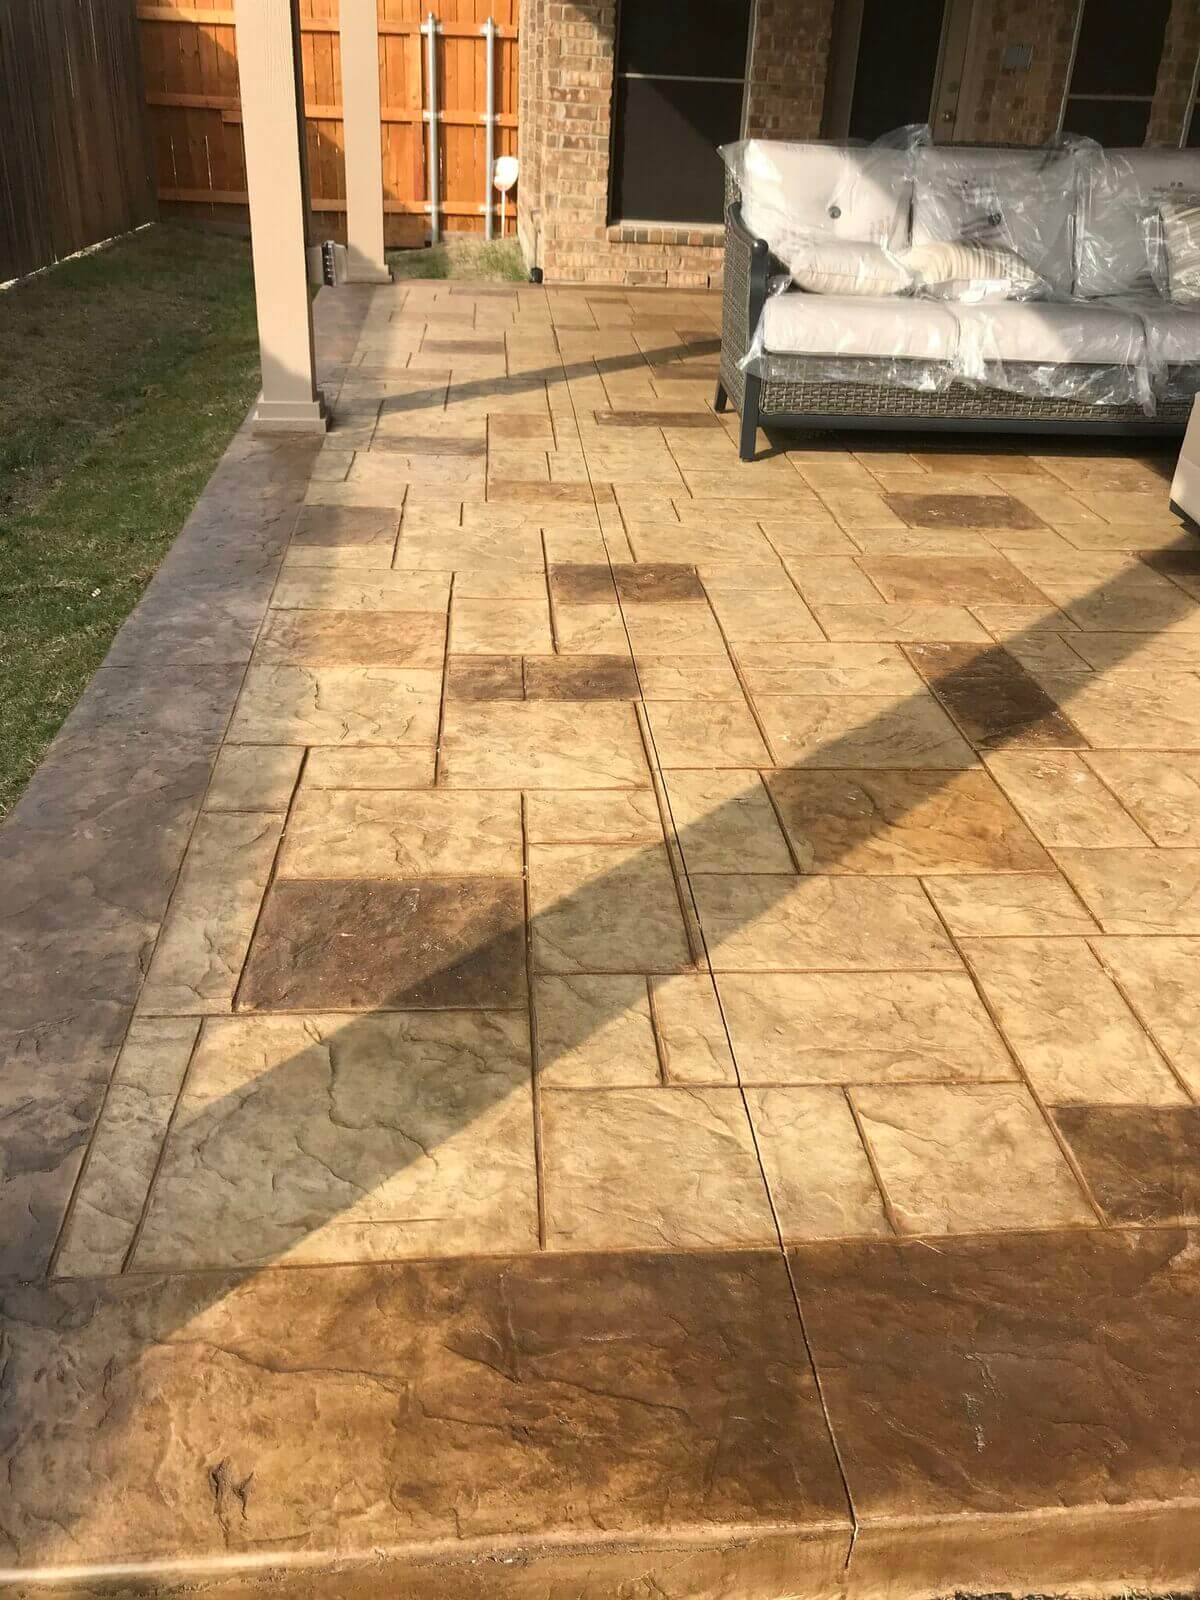 Stained and stamped patio